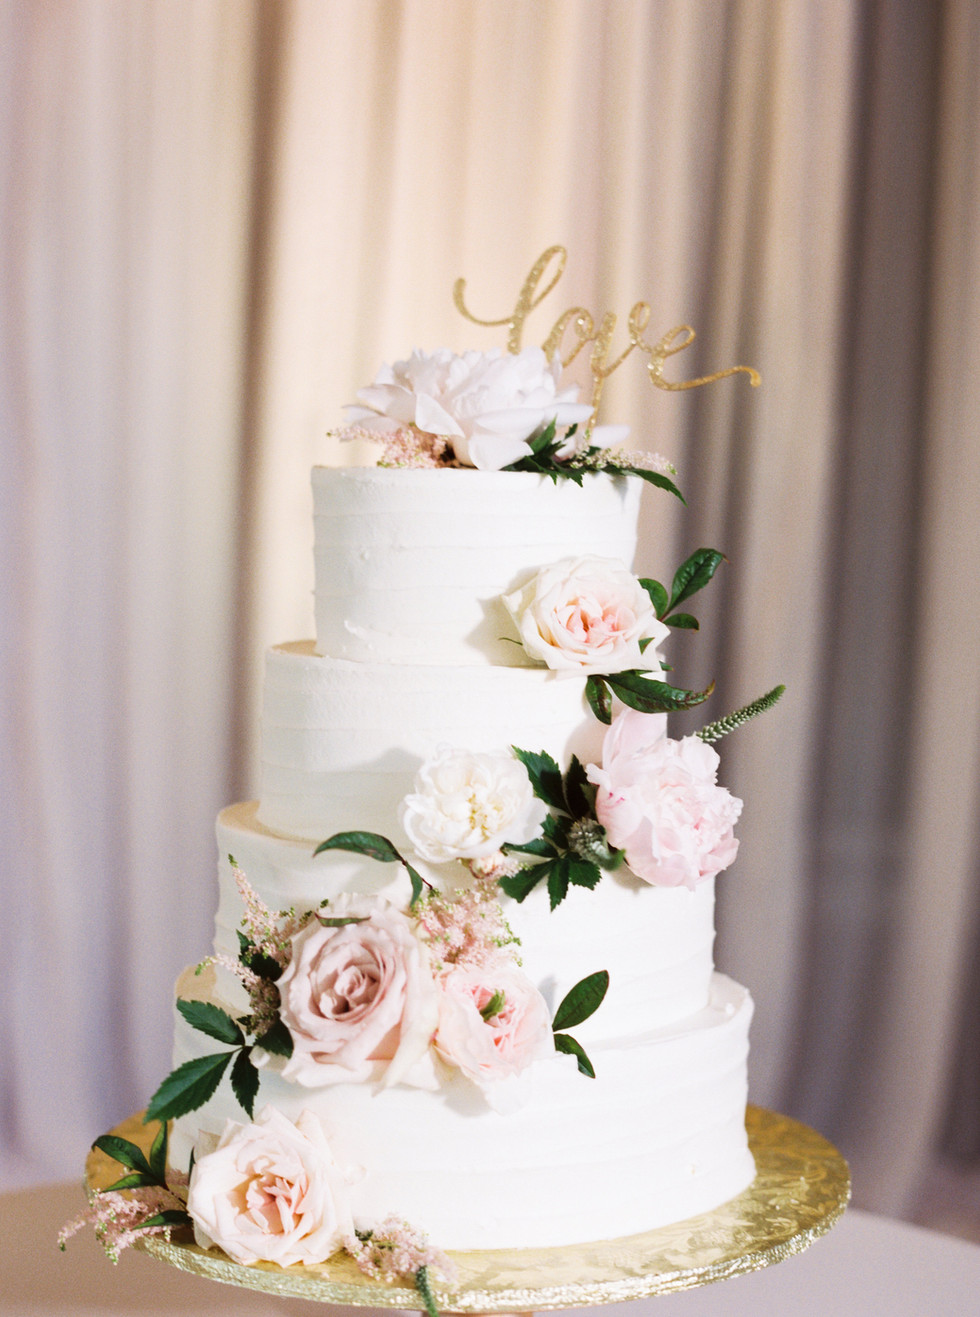 Cascading dusty blush roses and peonies on wedding cake. Photo: Mary Claire